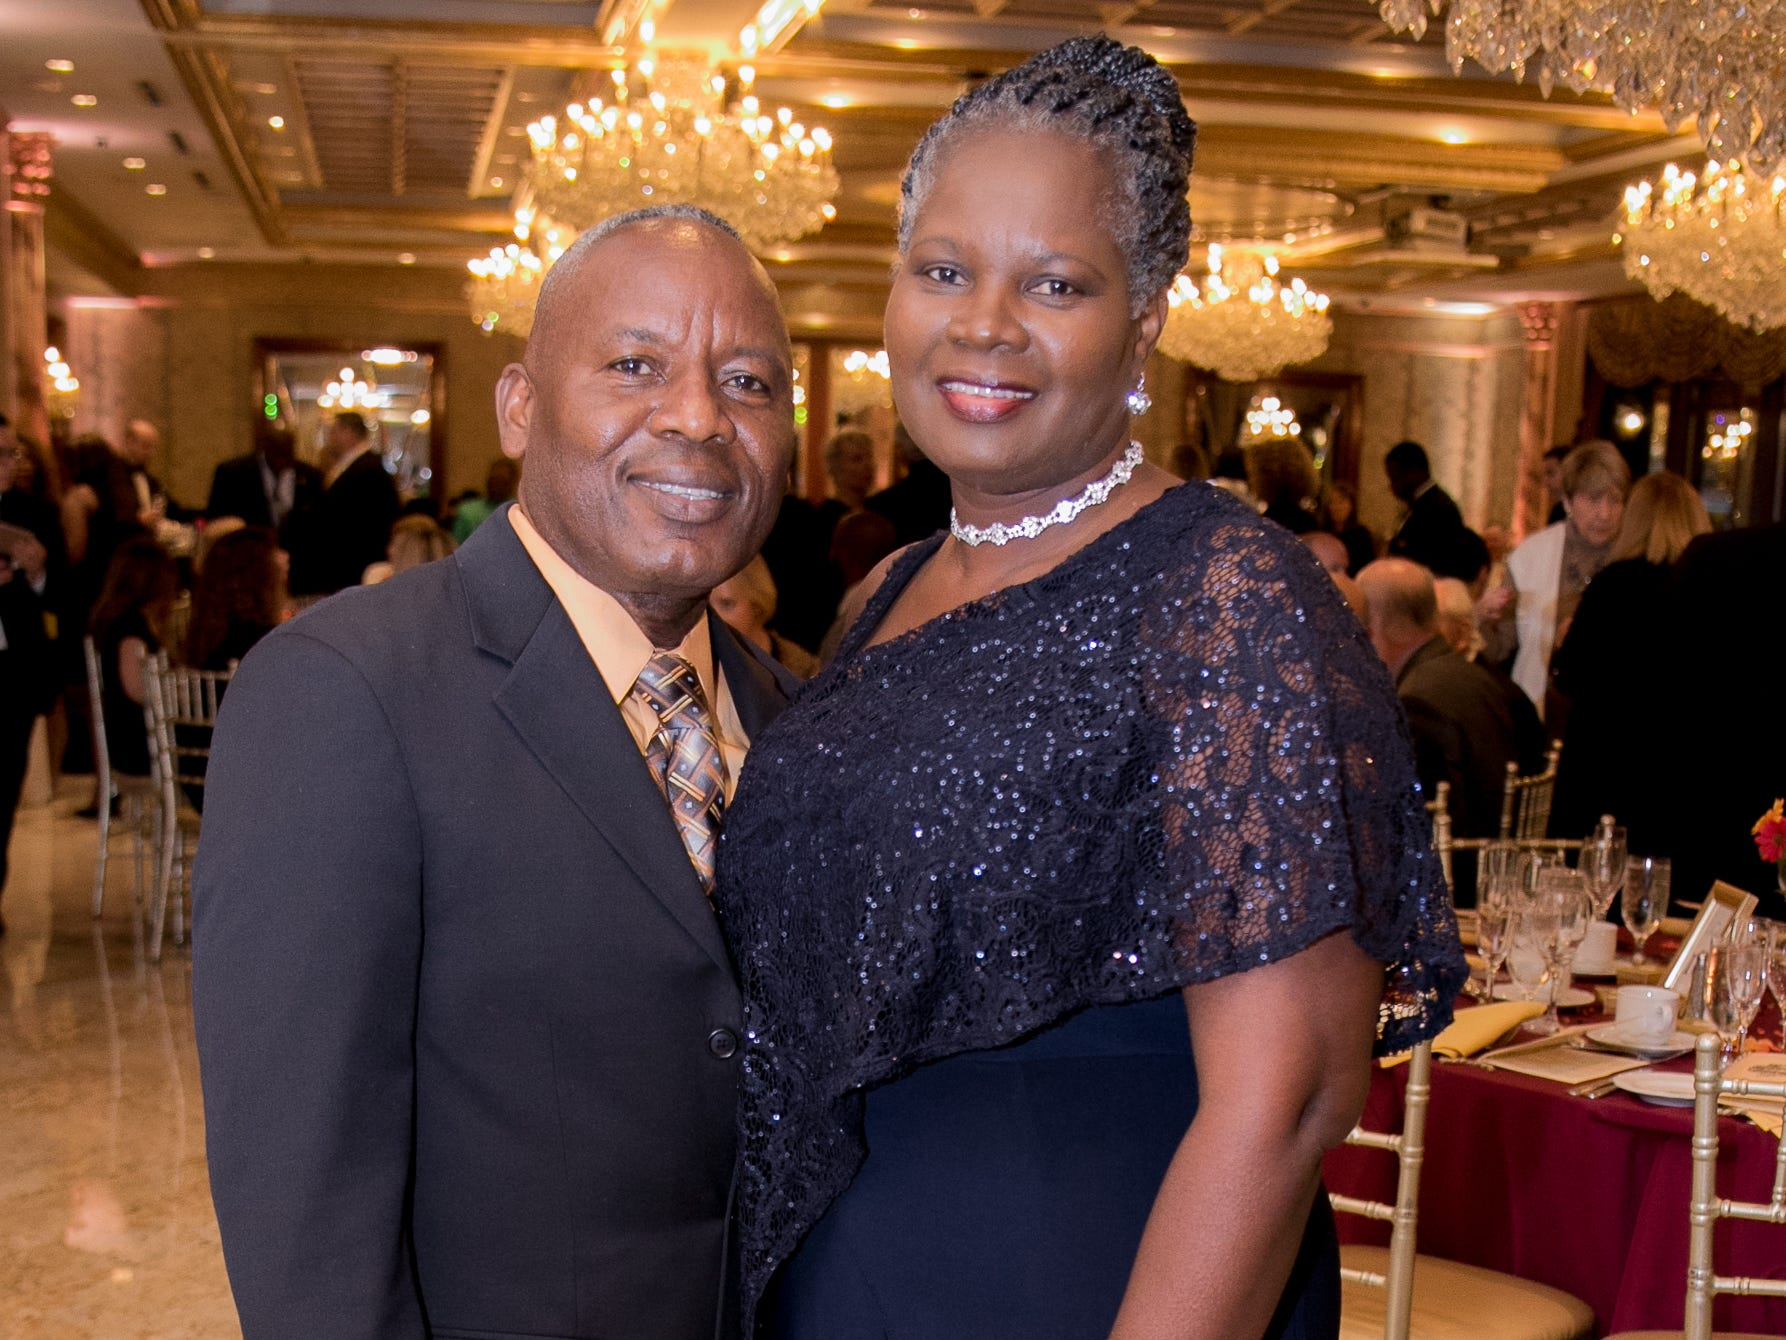 Delroy and Janis Reid. Youth Consultation Service – YCS held their 100th Anniversary Celebration at Seasons in Washington Township.11/5/2018